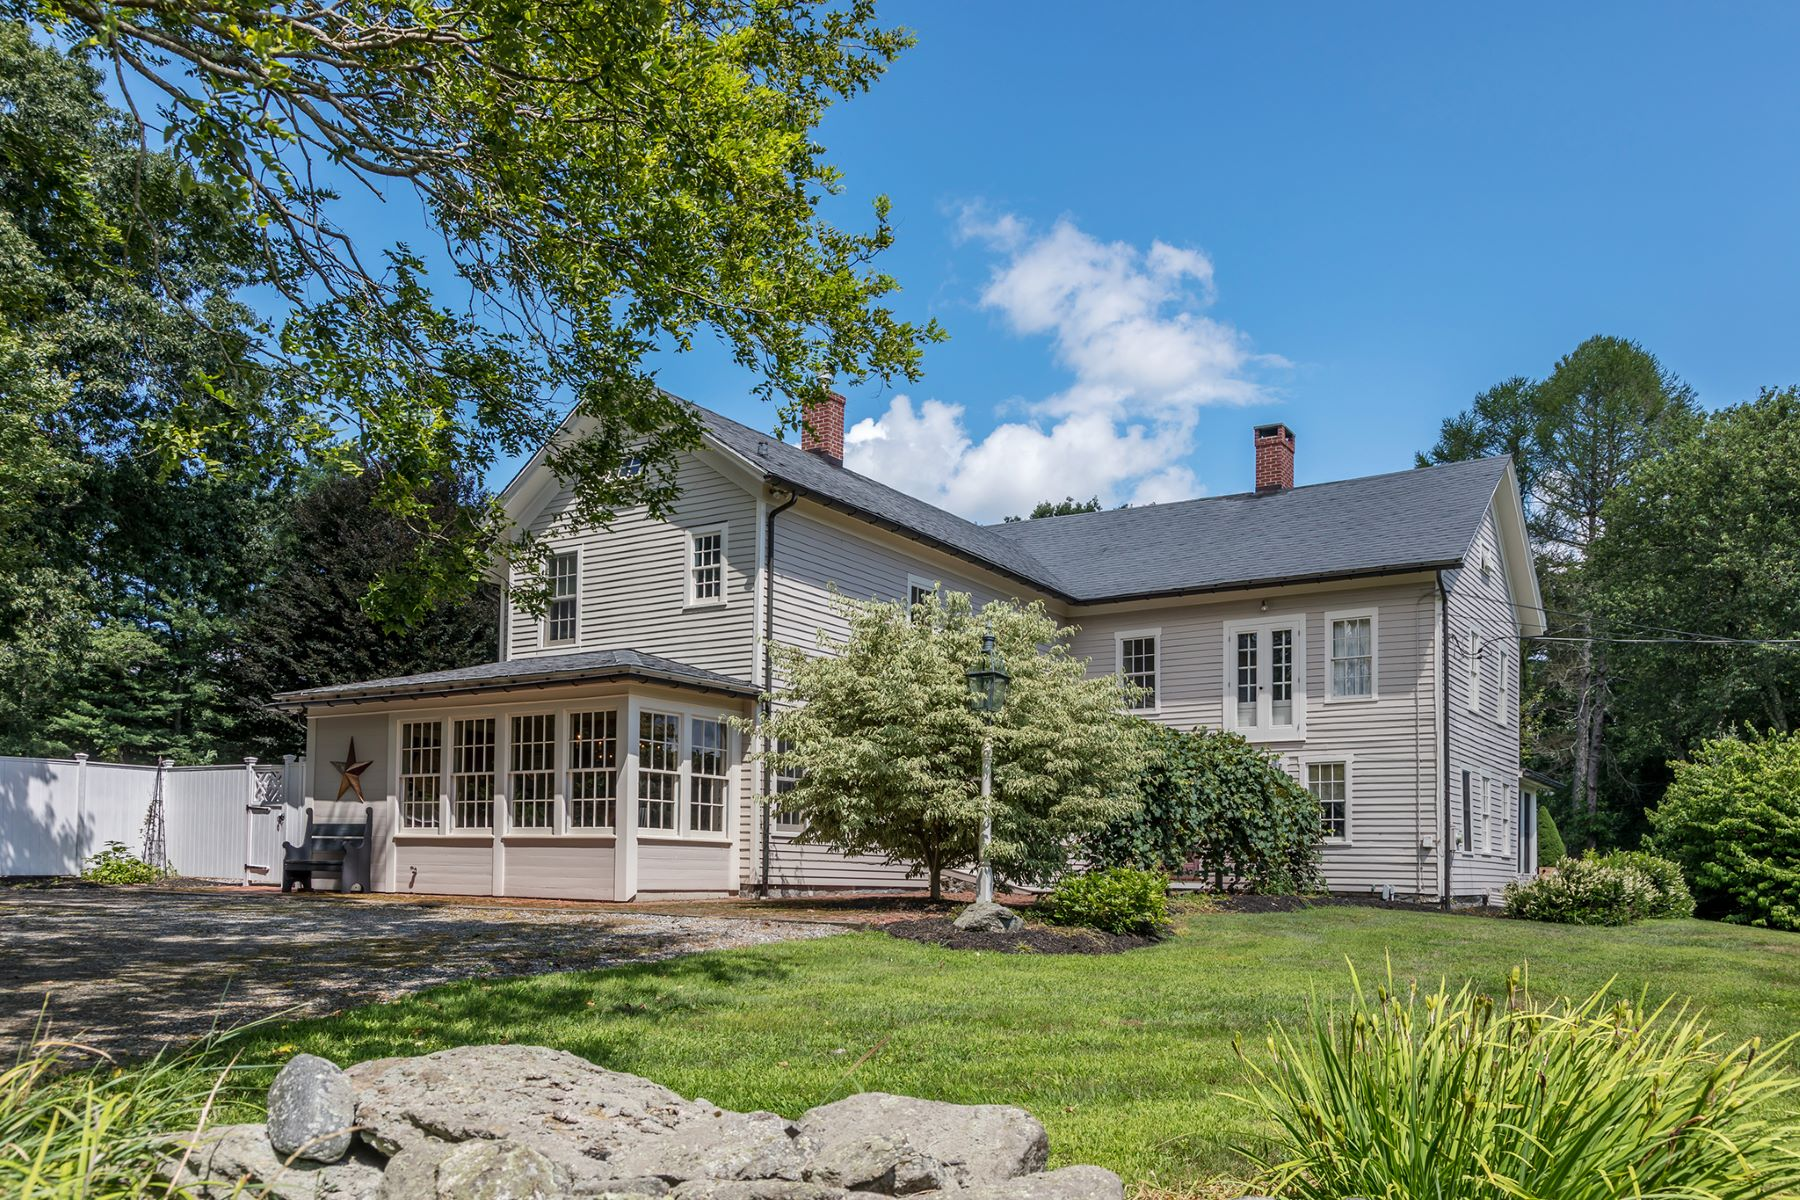 Single Family Homes for Sale at Quintessential New England Country Home 433 West Morris Road Morris, Connecticut 06763 United States